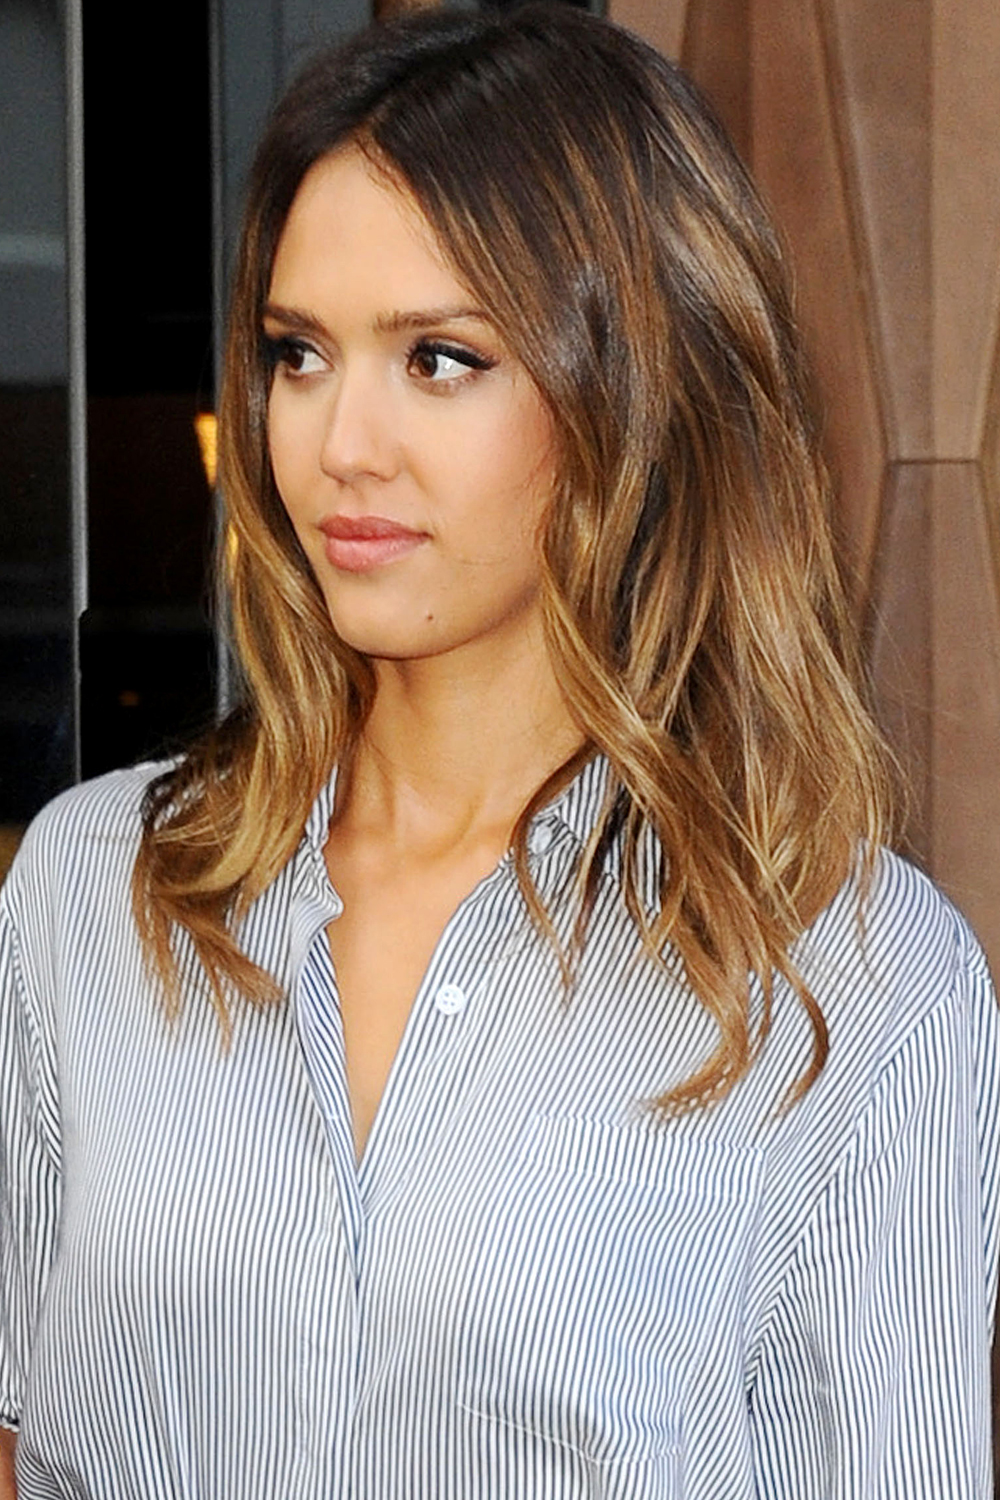 Jessica-Alba-NY medium length haircuts